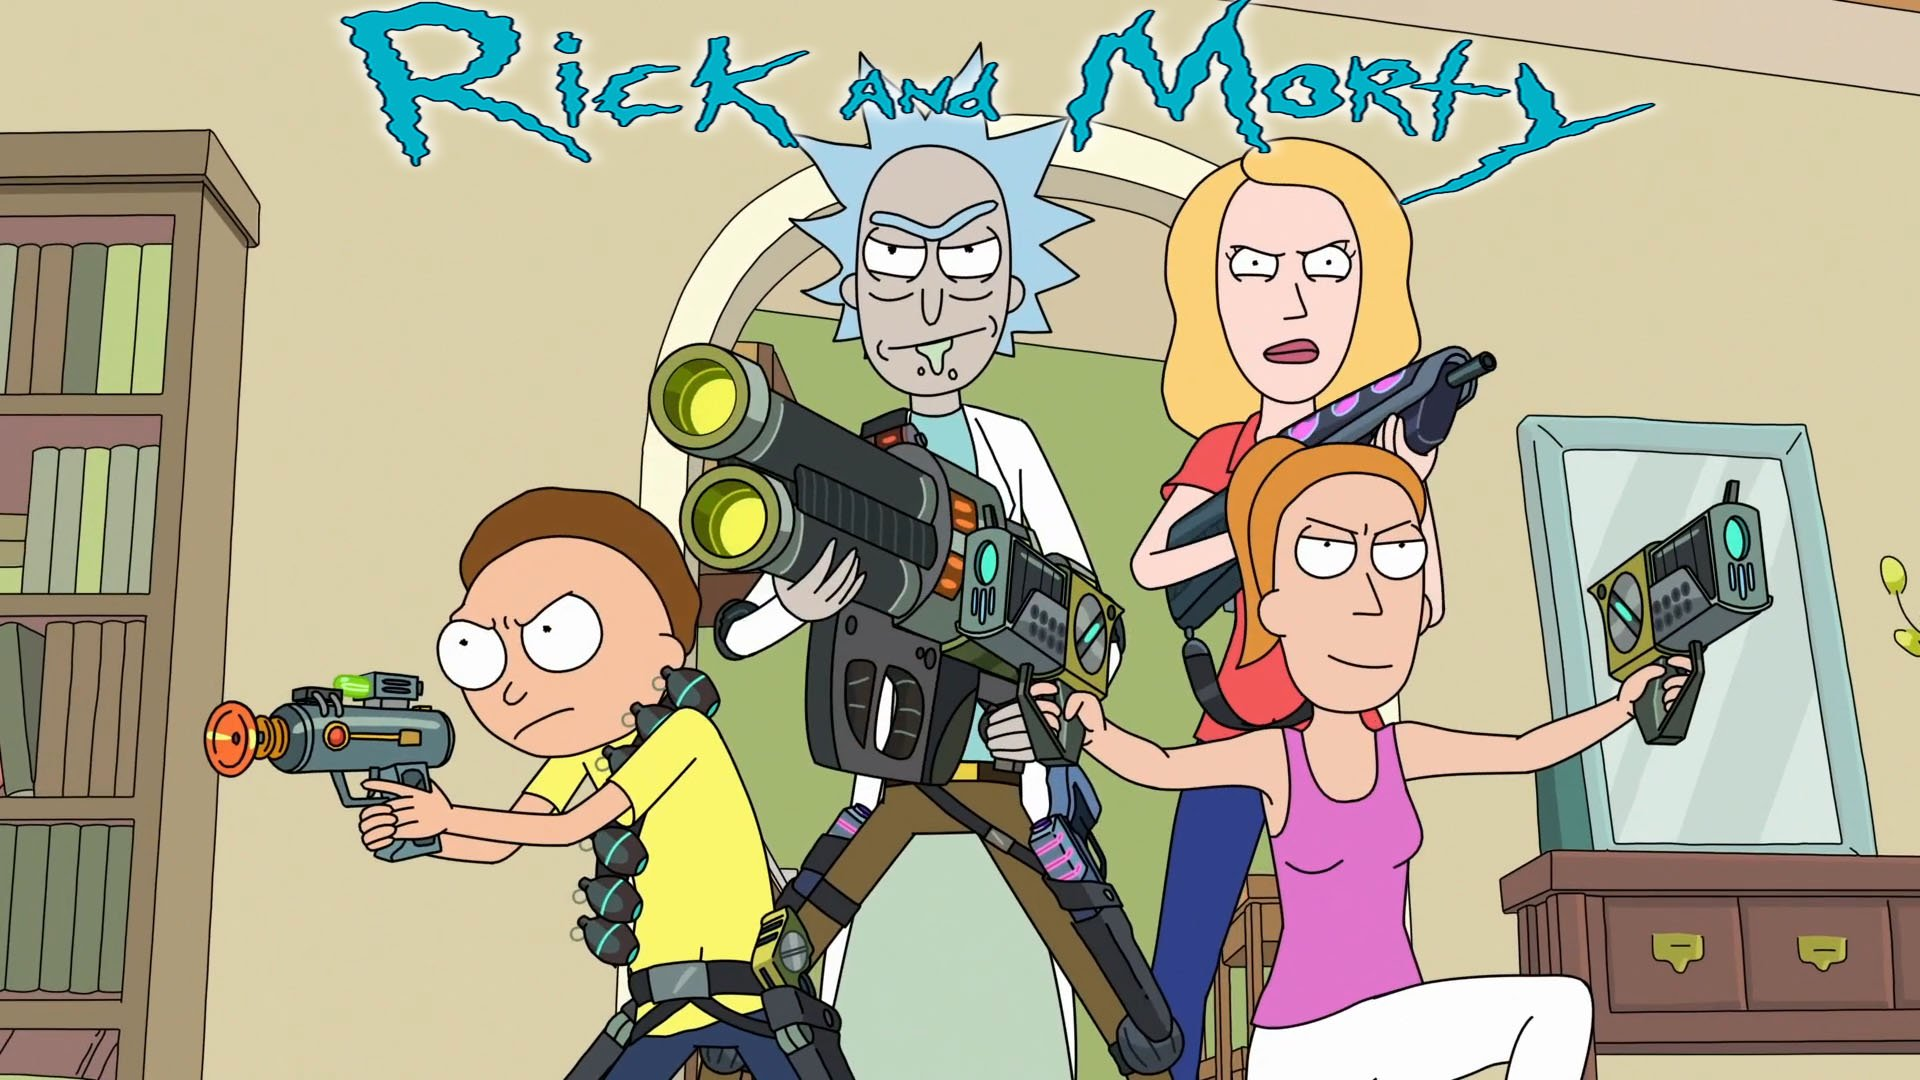 rick wallpapers  photos and desktop backgrounds up to 8K  7680x4320     Rick and Morty HD UPDATED wallpaper